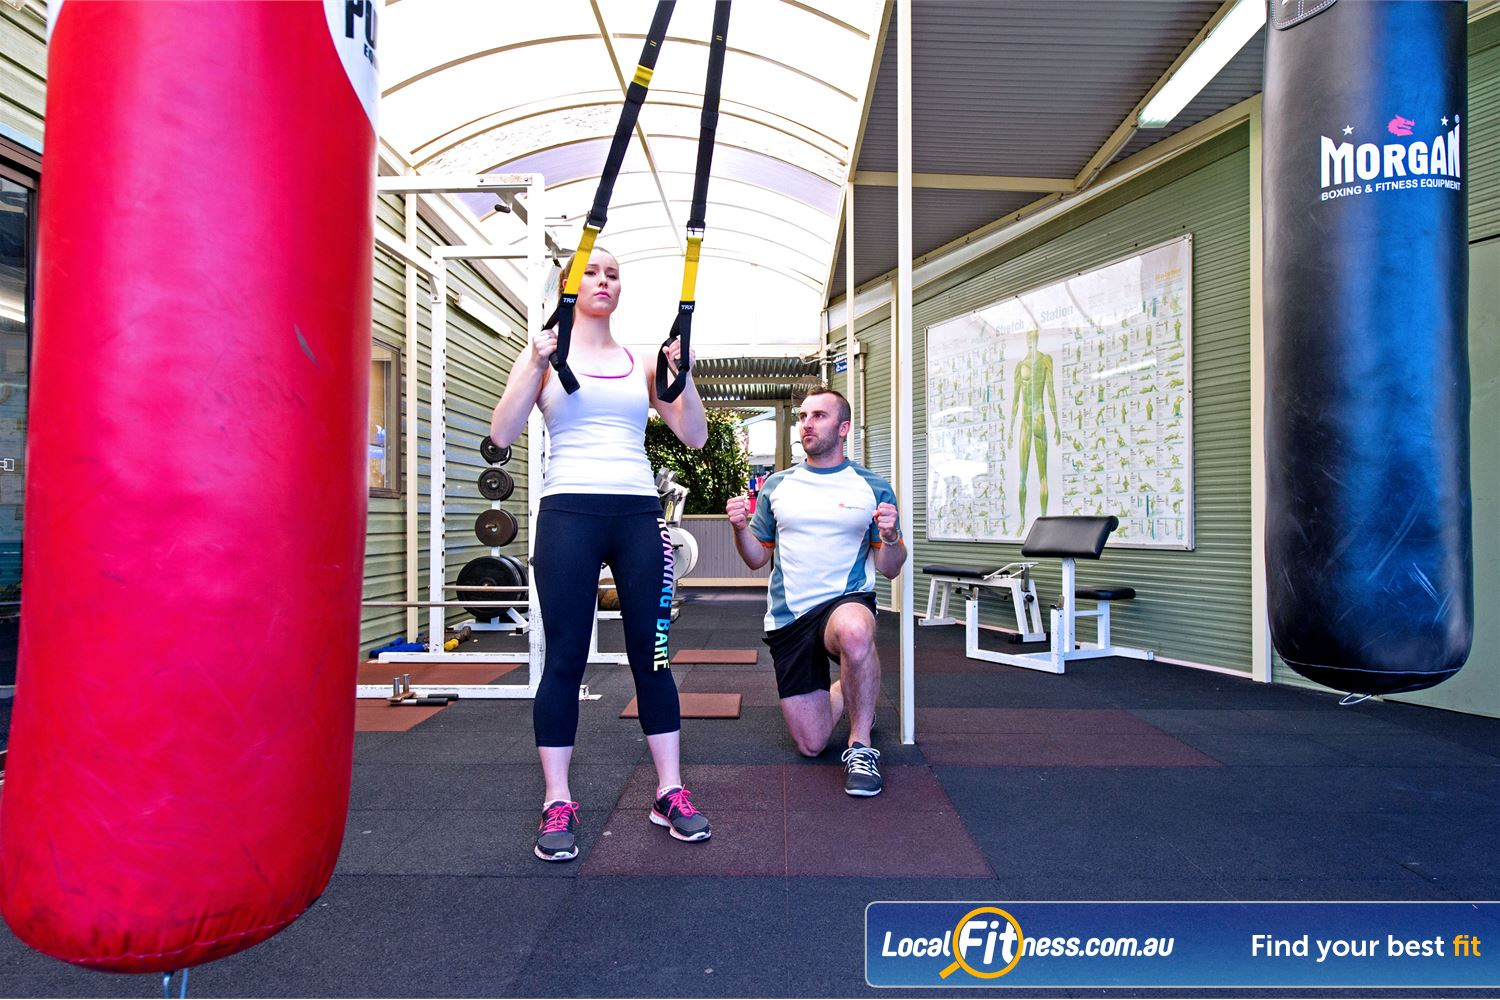 Waves Fitness and Aquatic Centre Baulkham Hills Our Baulkham Hills gym instructors can introduce you to TRX training.